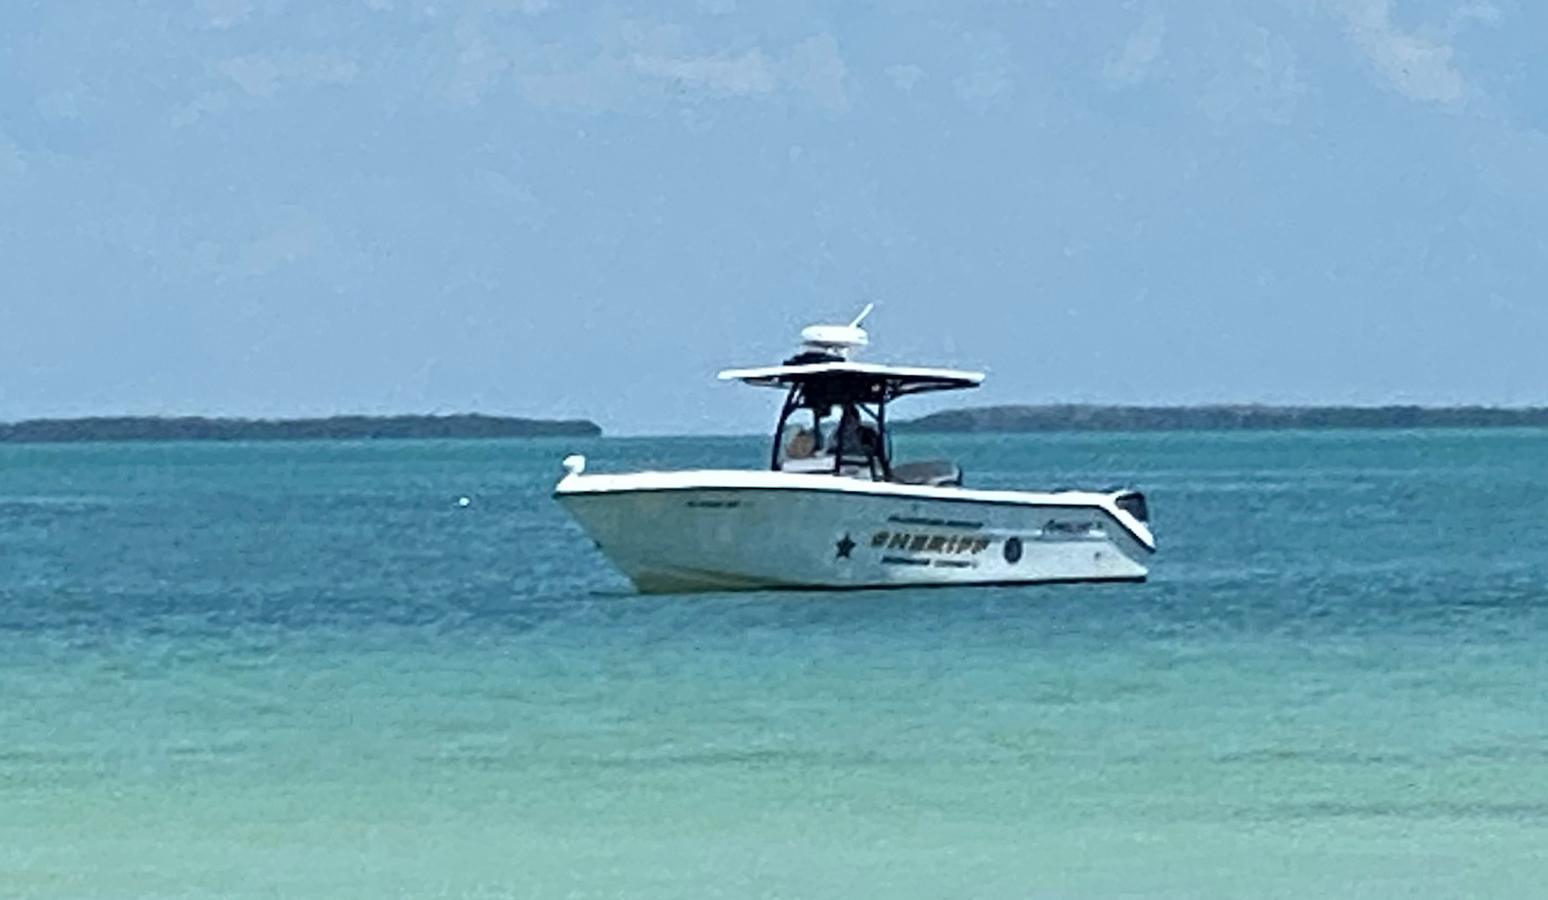 MCSO Boat off the Beach